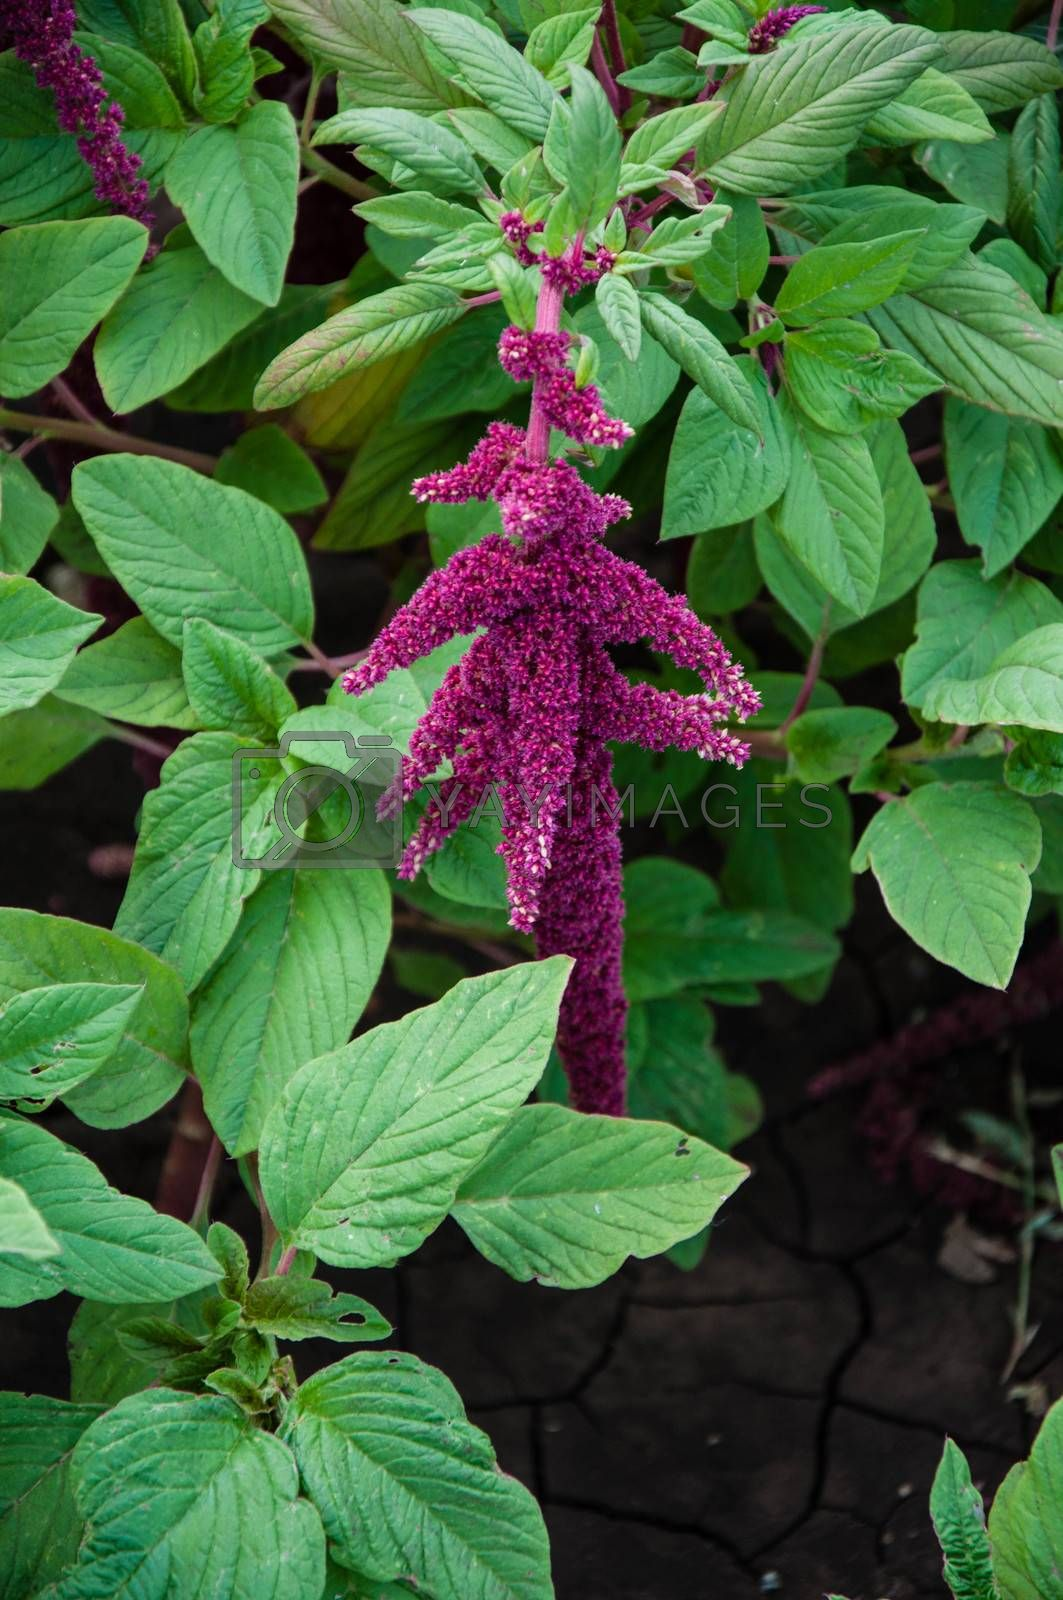 Amaranth is one of the family Amaranthaceae